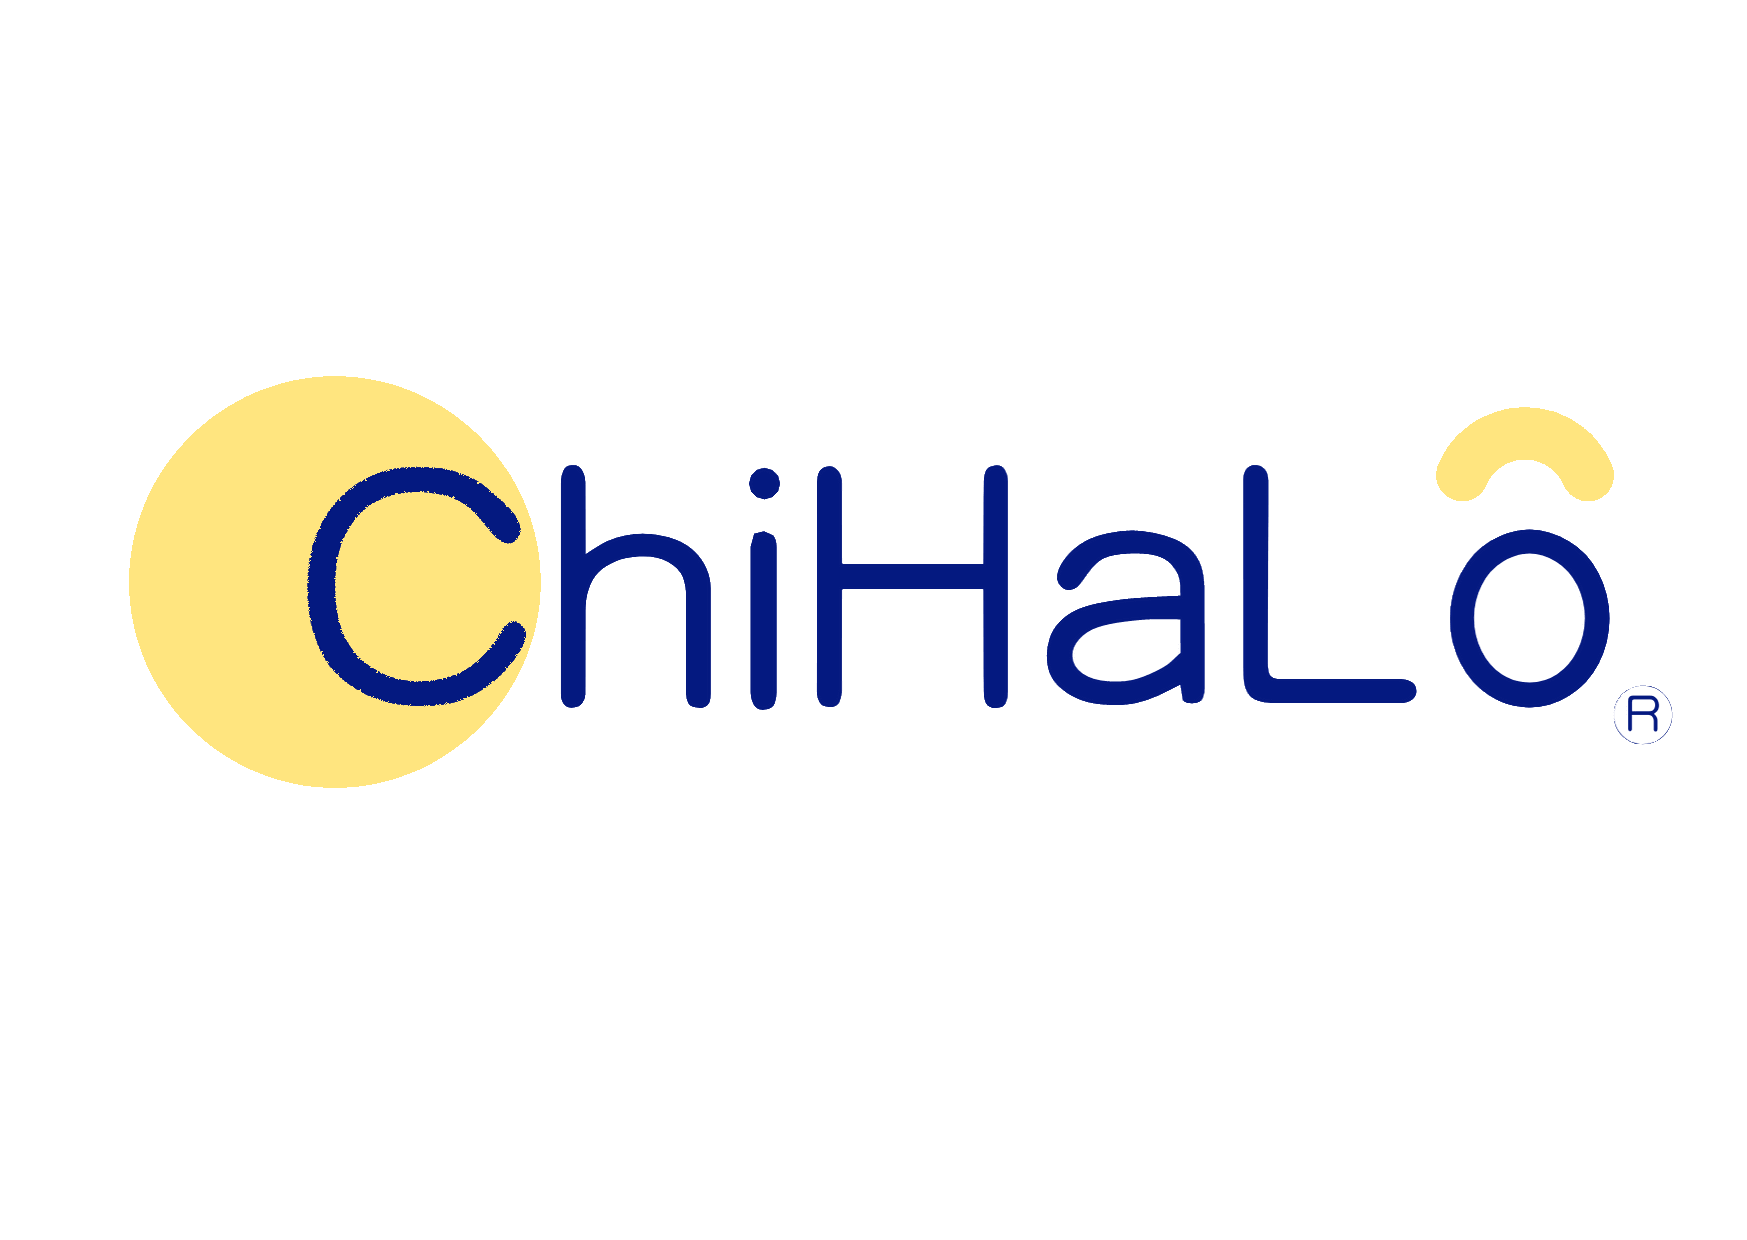 Chihalo Laser